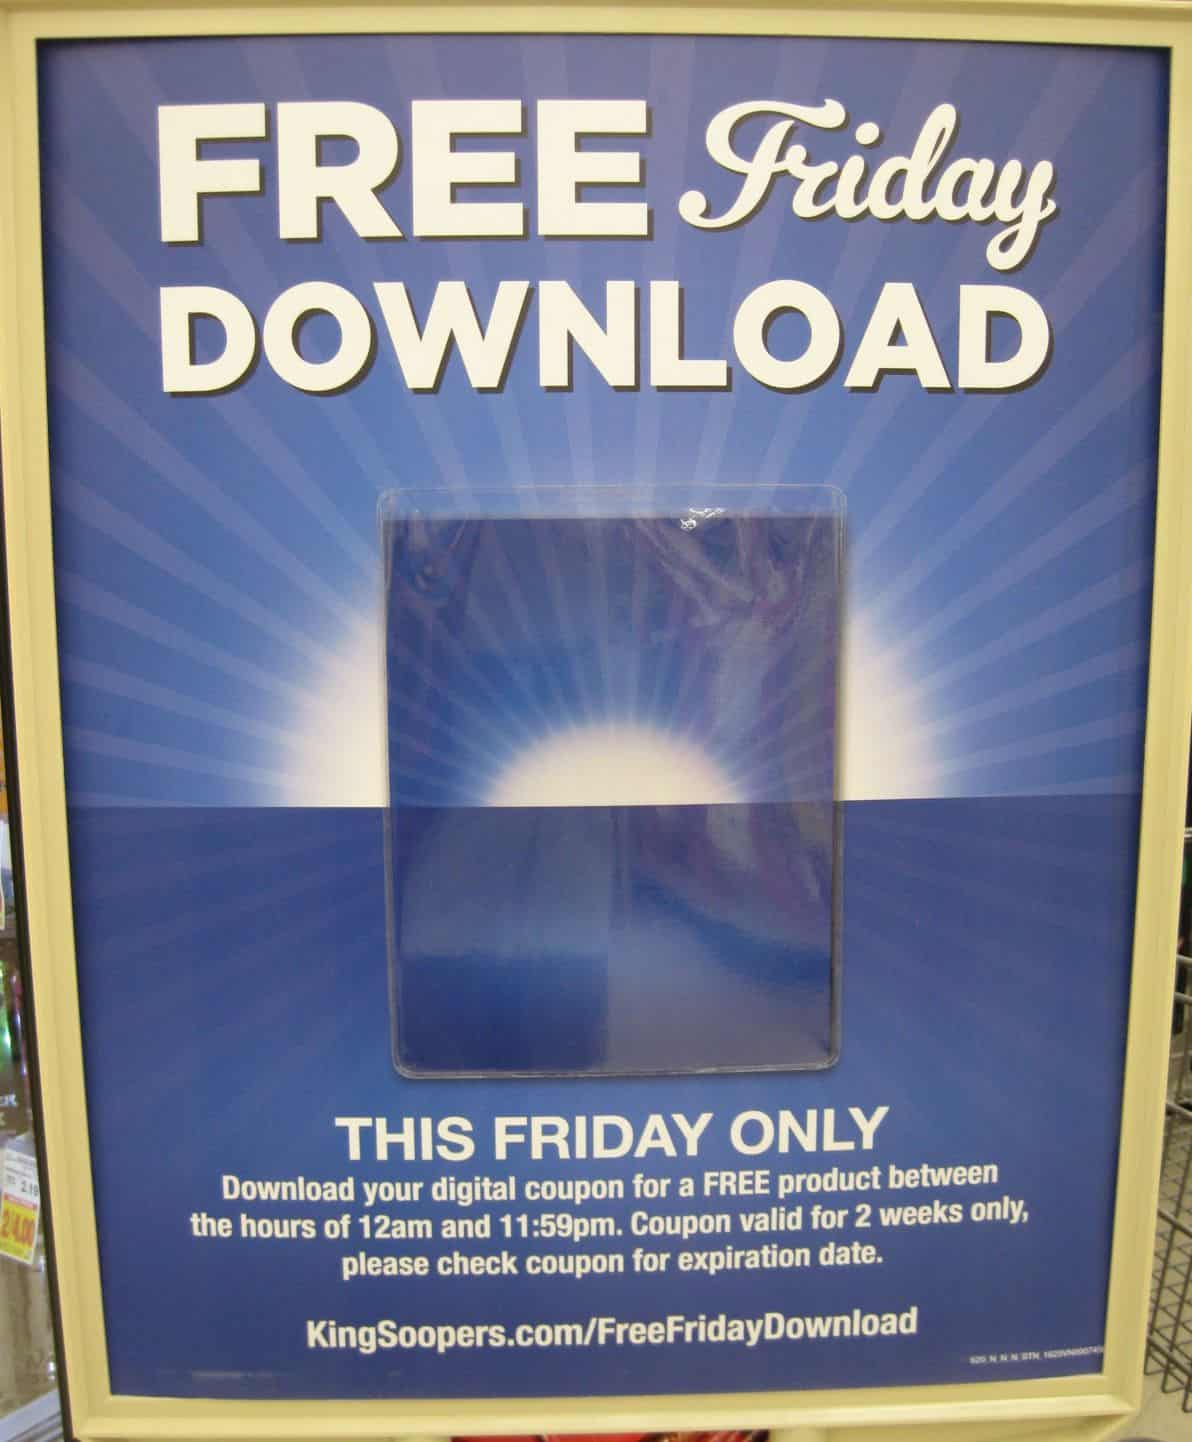 what happened to free friday download